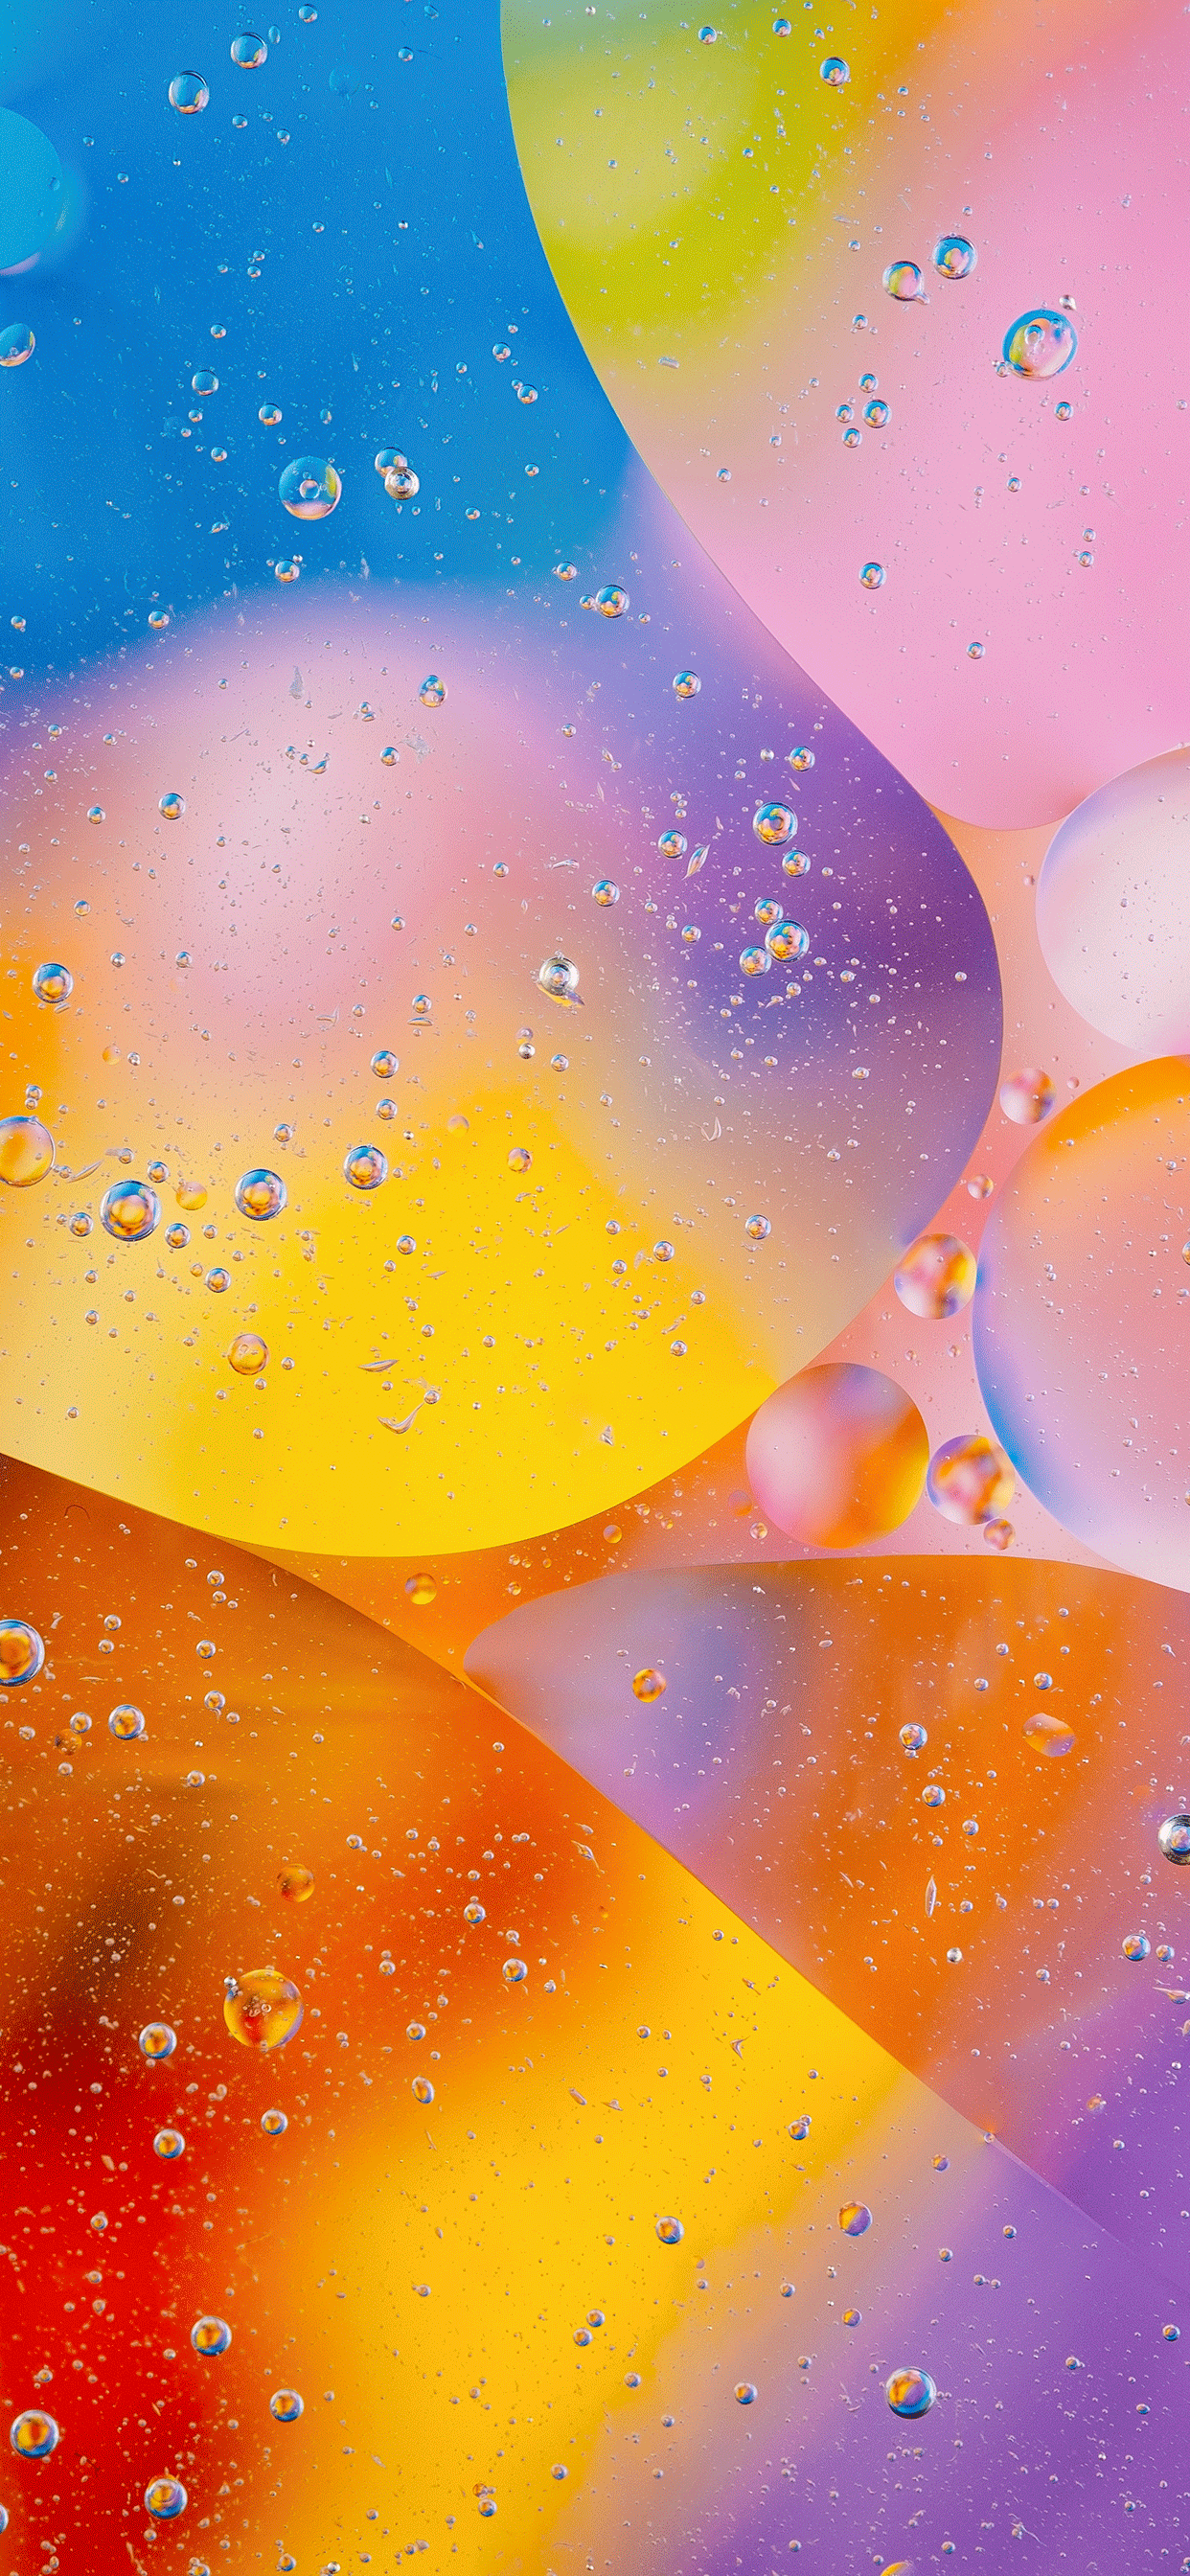 iPhone wallpapers abstract bubbles colors Fonds d'écran iPhone du 26/02/2019